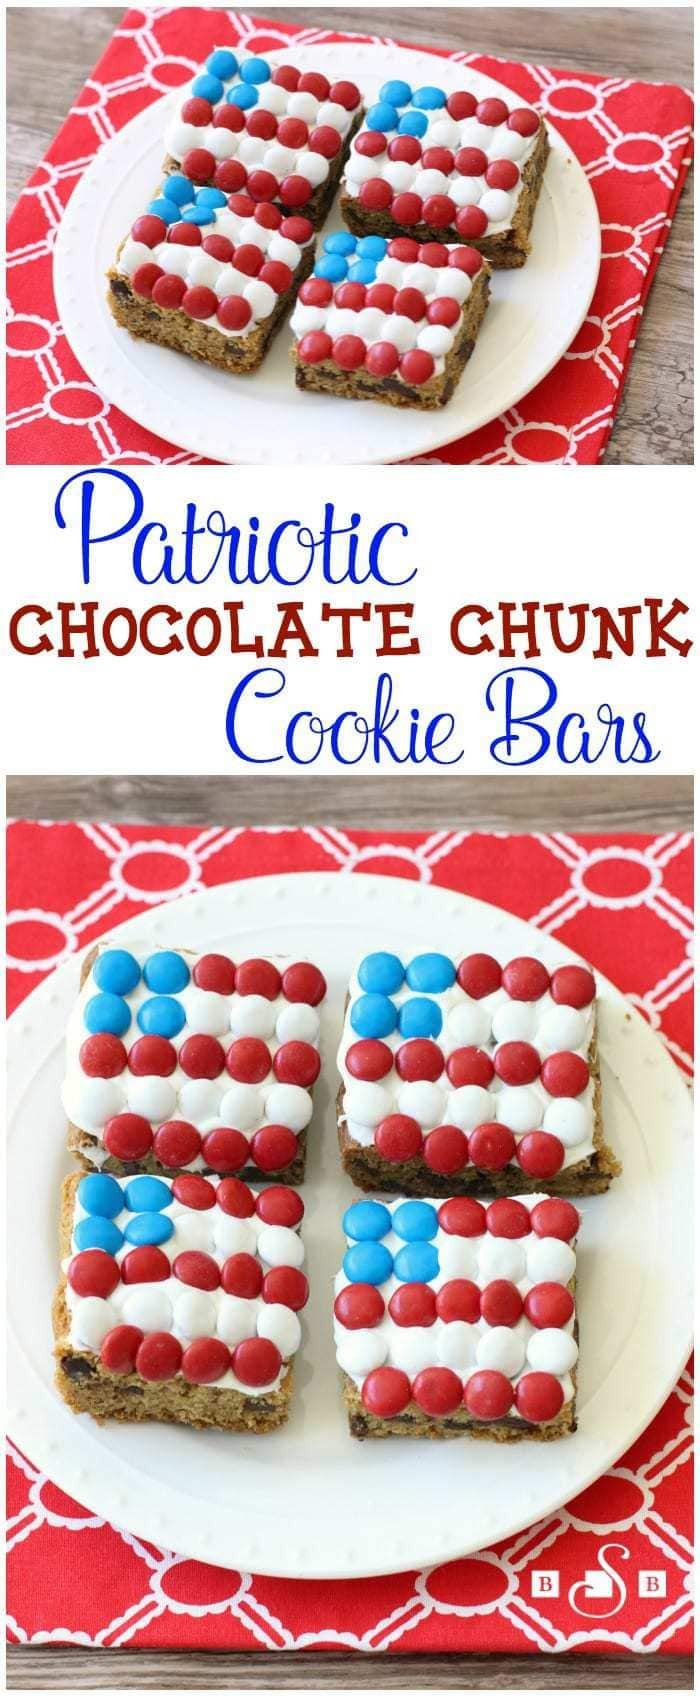 Patriotic Chocolate Chunk Cookie Bars - Butter With A Side of Bread -- This recipe is so easy to make and you'll love how fun & festive they turn out! Perfect for 4th of July, Memorial Day or any other day you feel like being patriotic. Cute red, white & blue chocolate candies on top add the perfect touch!